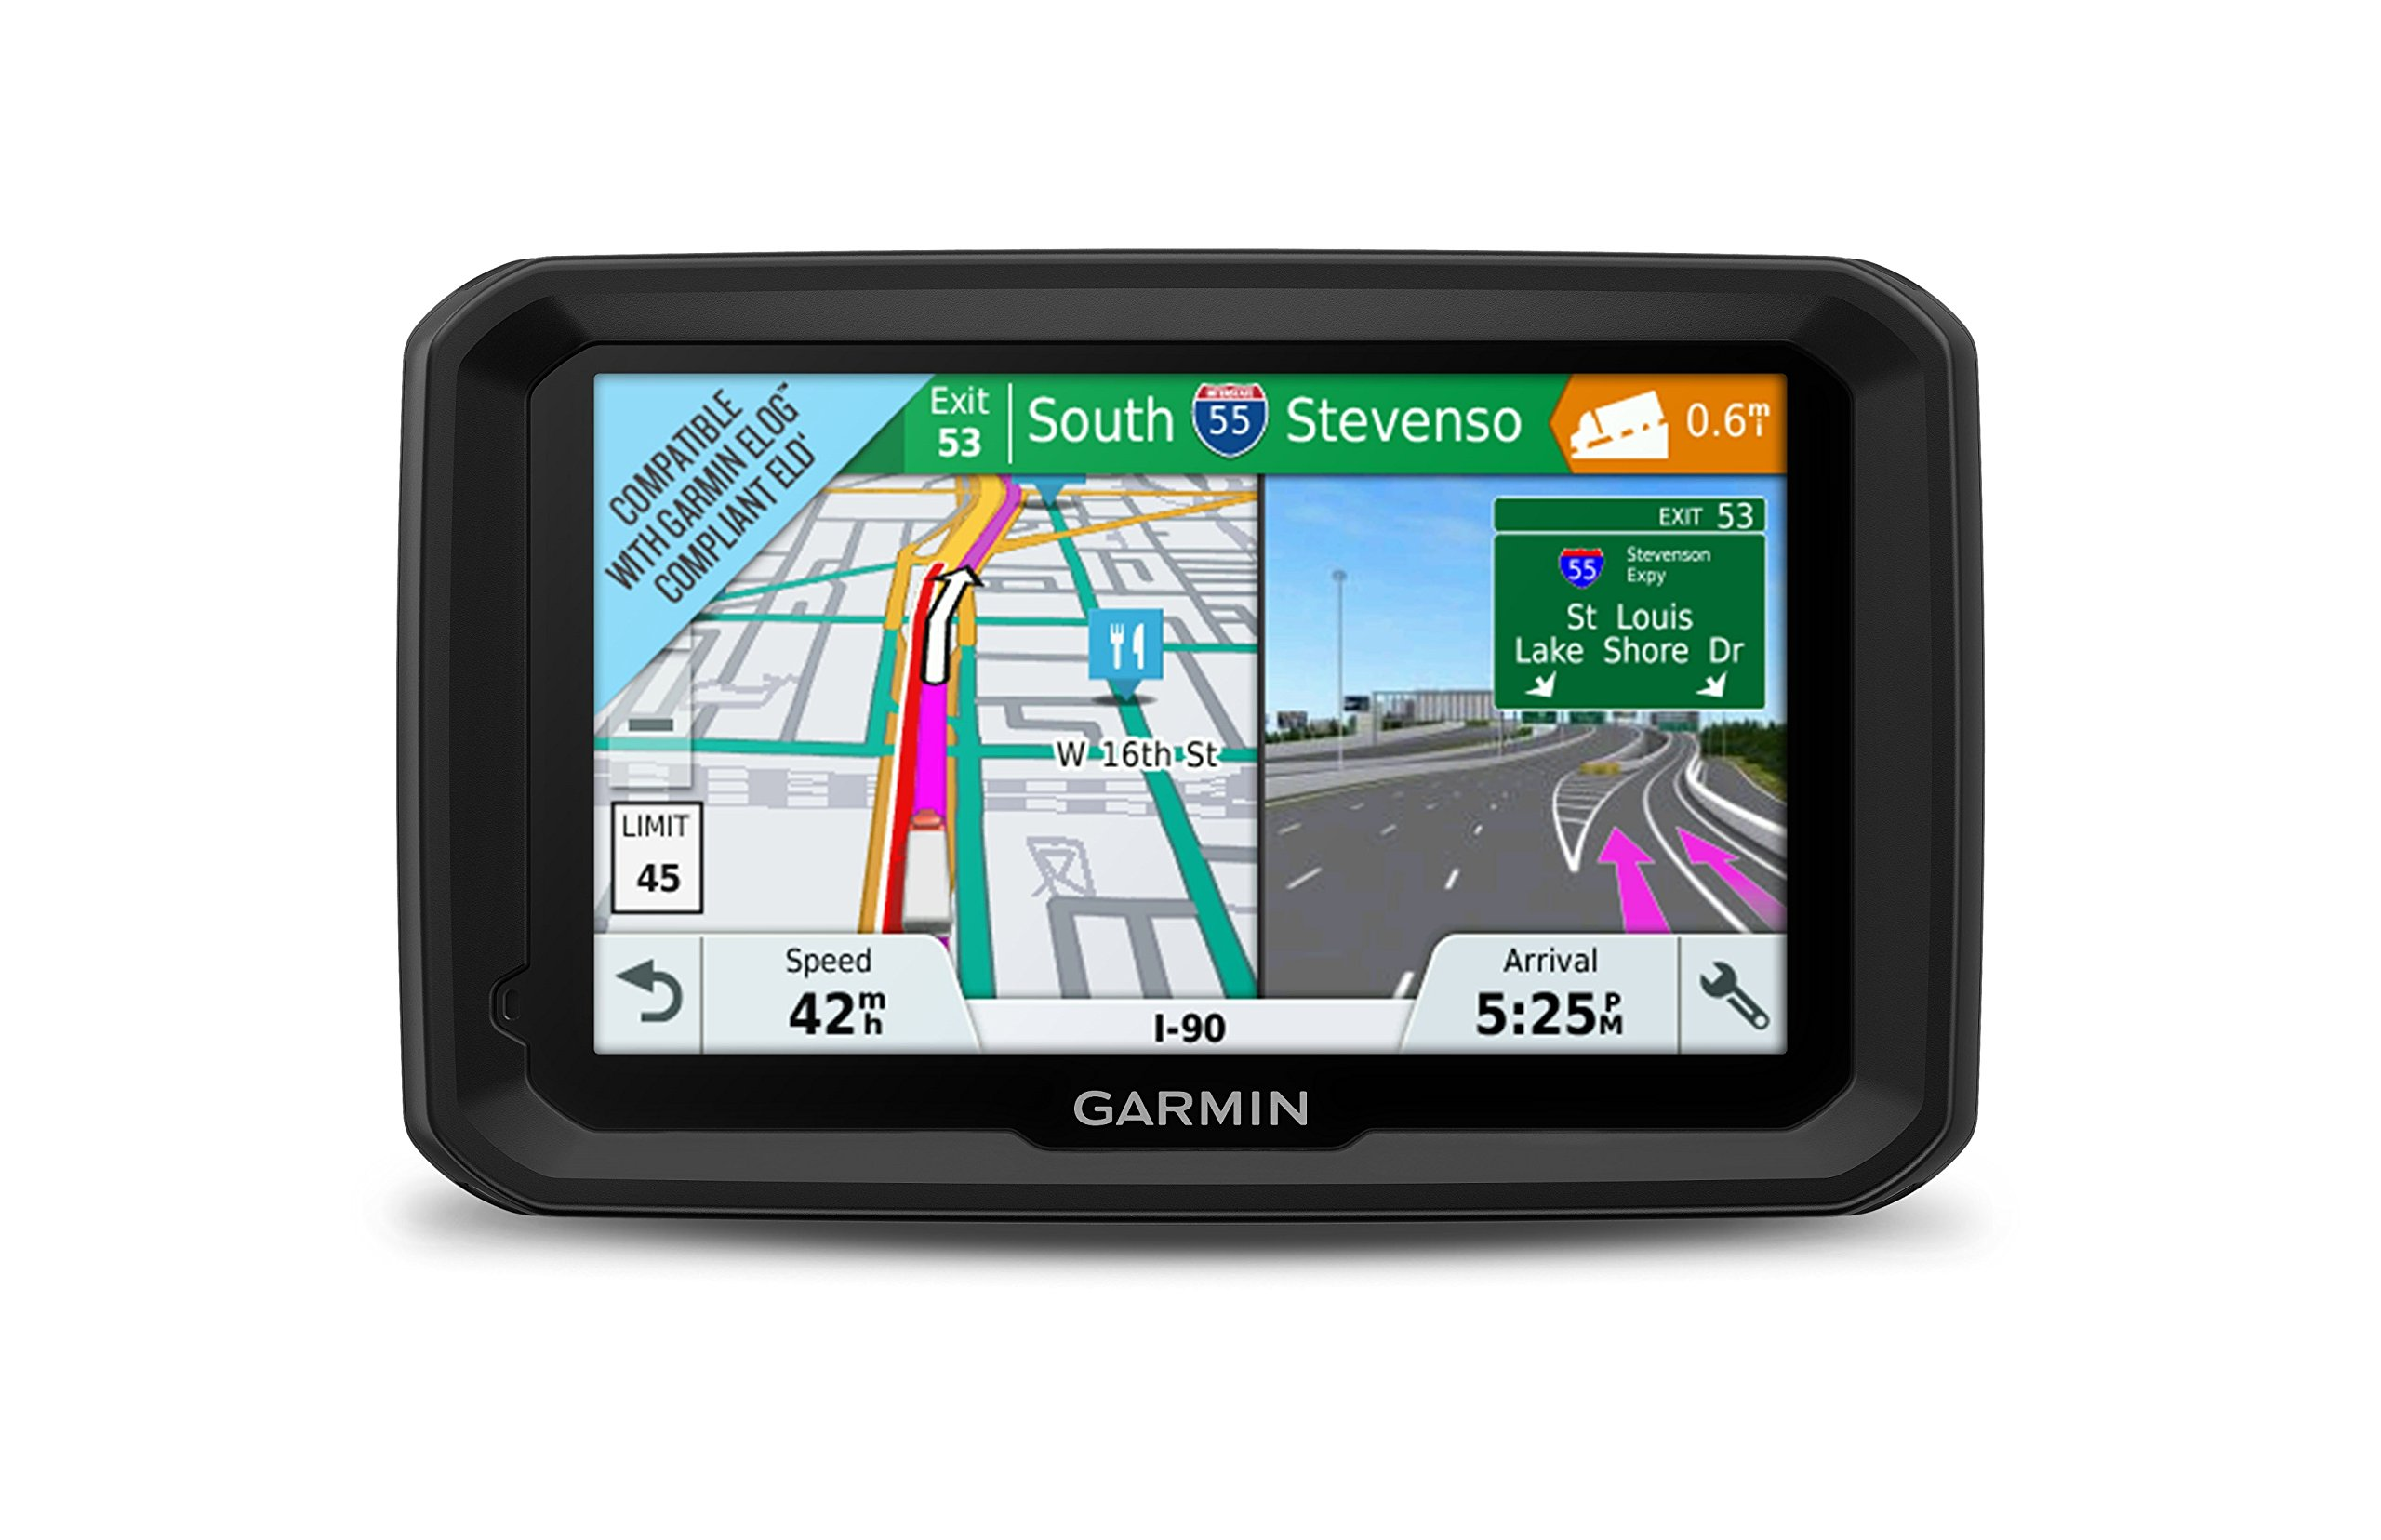 Garmin dezl 580 LMT-S, Truck GPS Navigator with 5-inch Display, Free Lifetime Map Updates, Live Traffic and Weather by Garmin